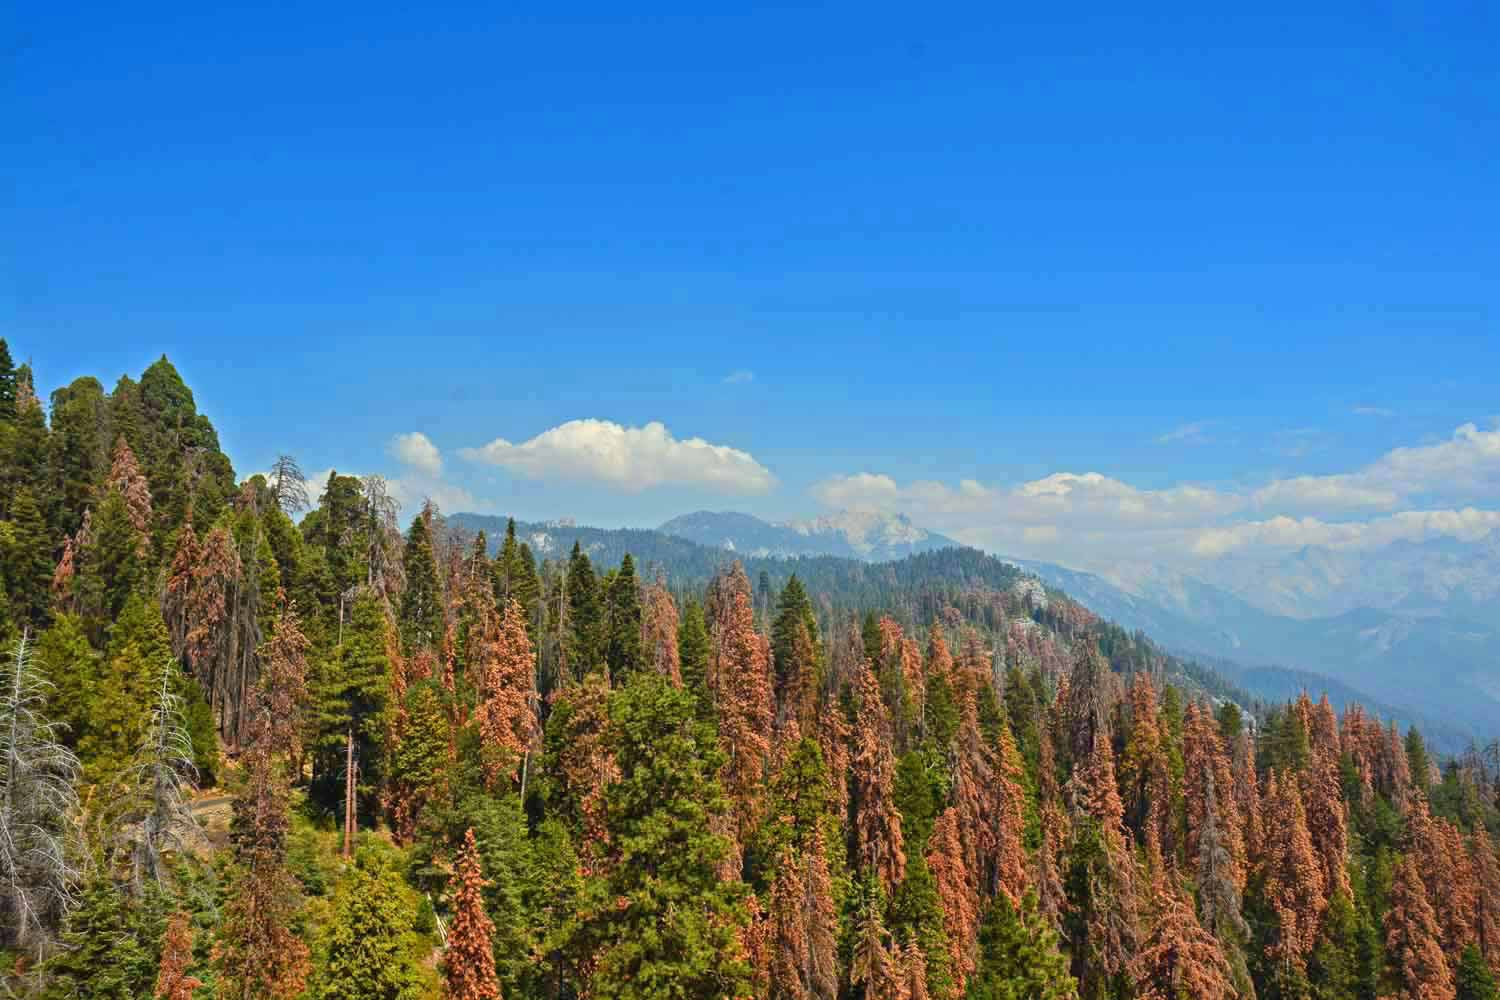 Note the dead and/or dying trees.  Otherwise nice view across the Sierra Nevada's.